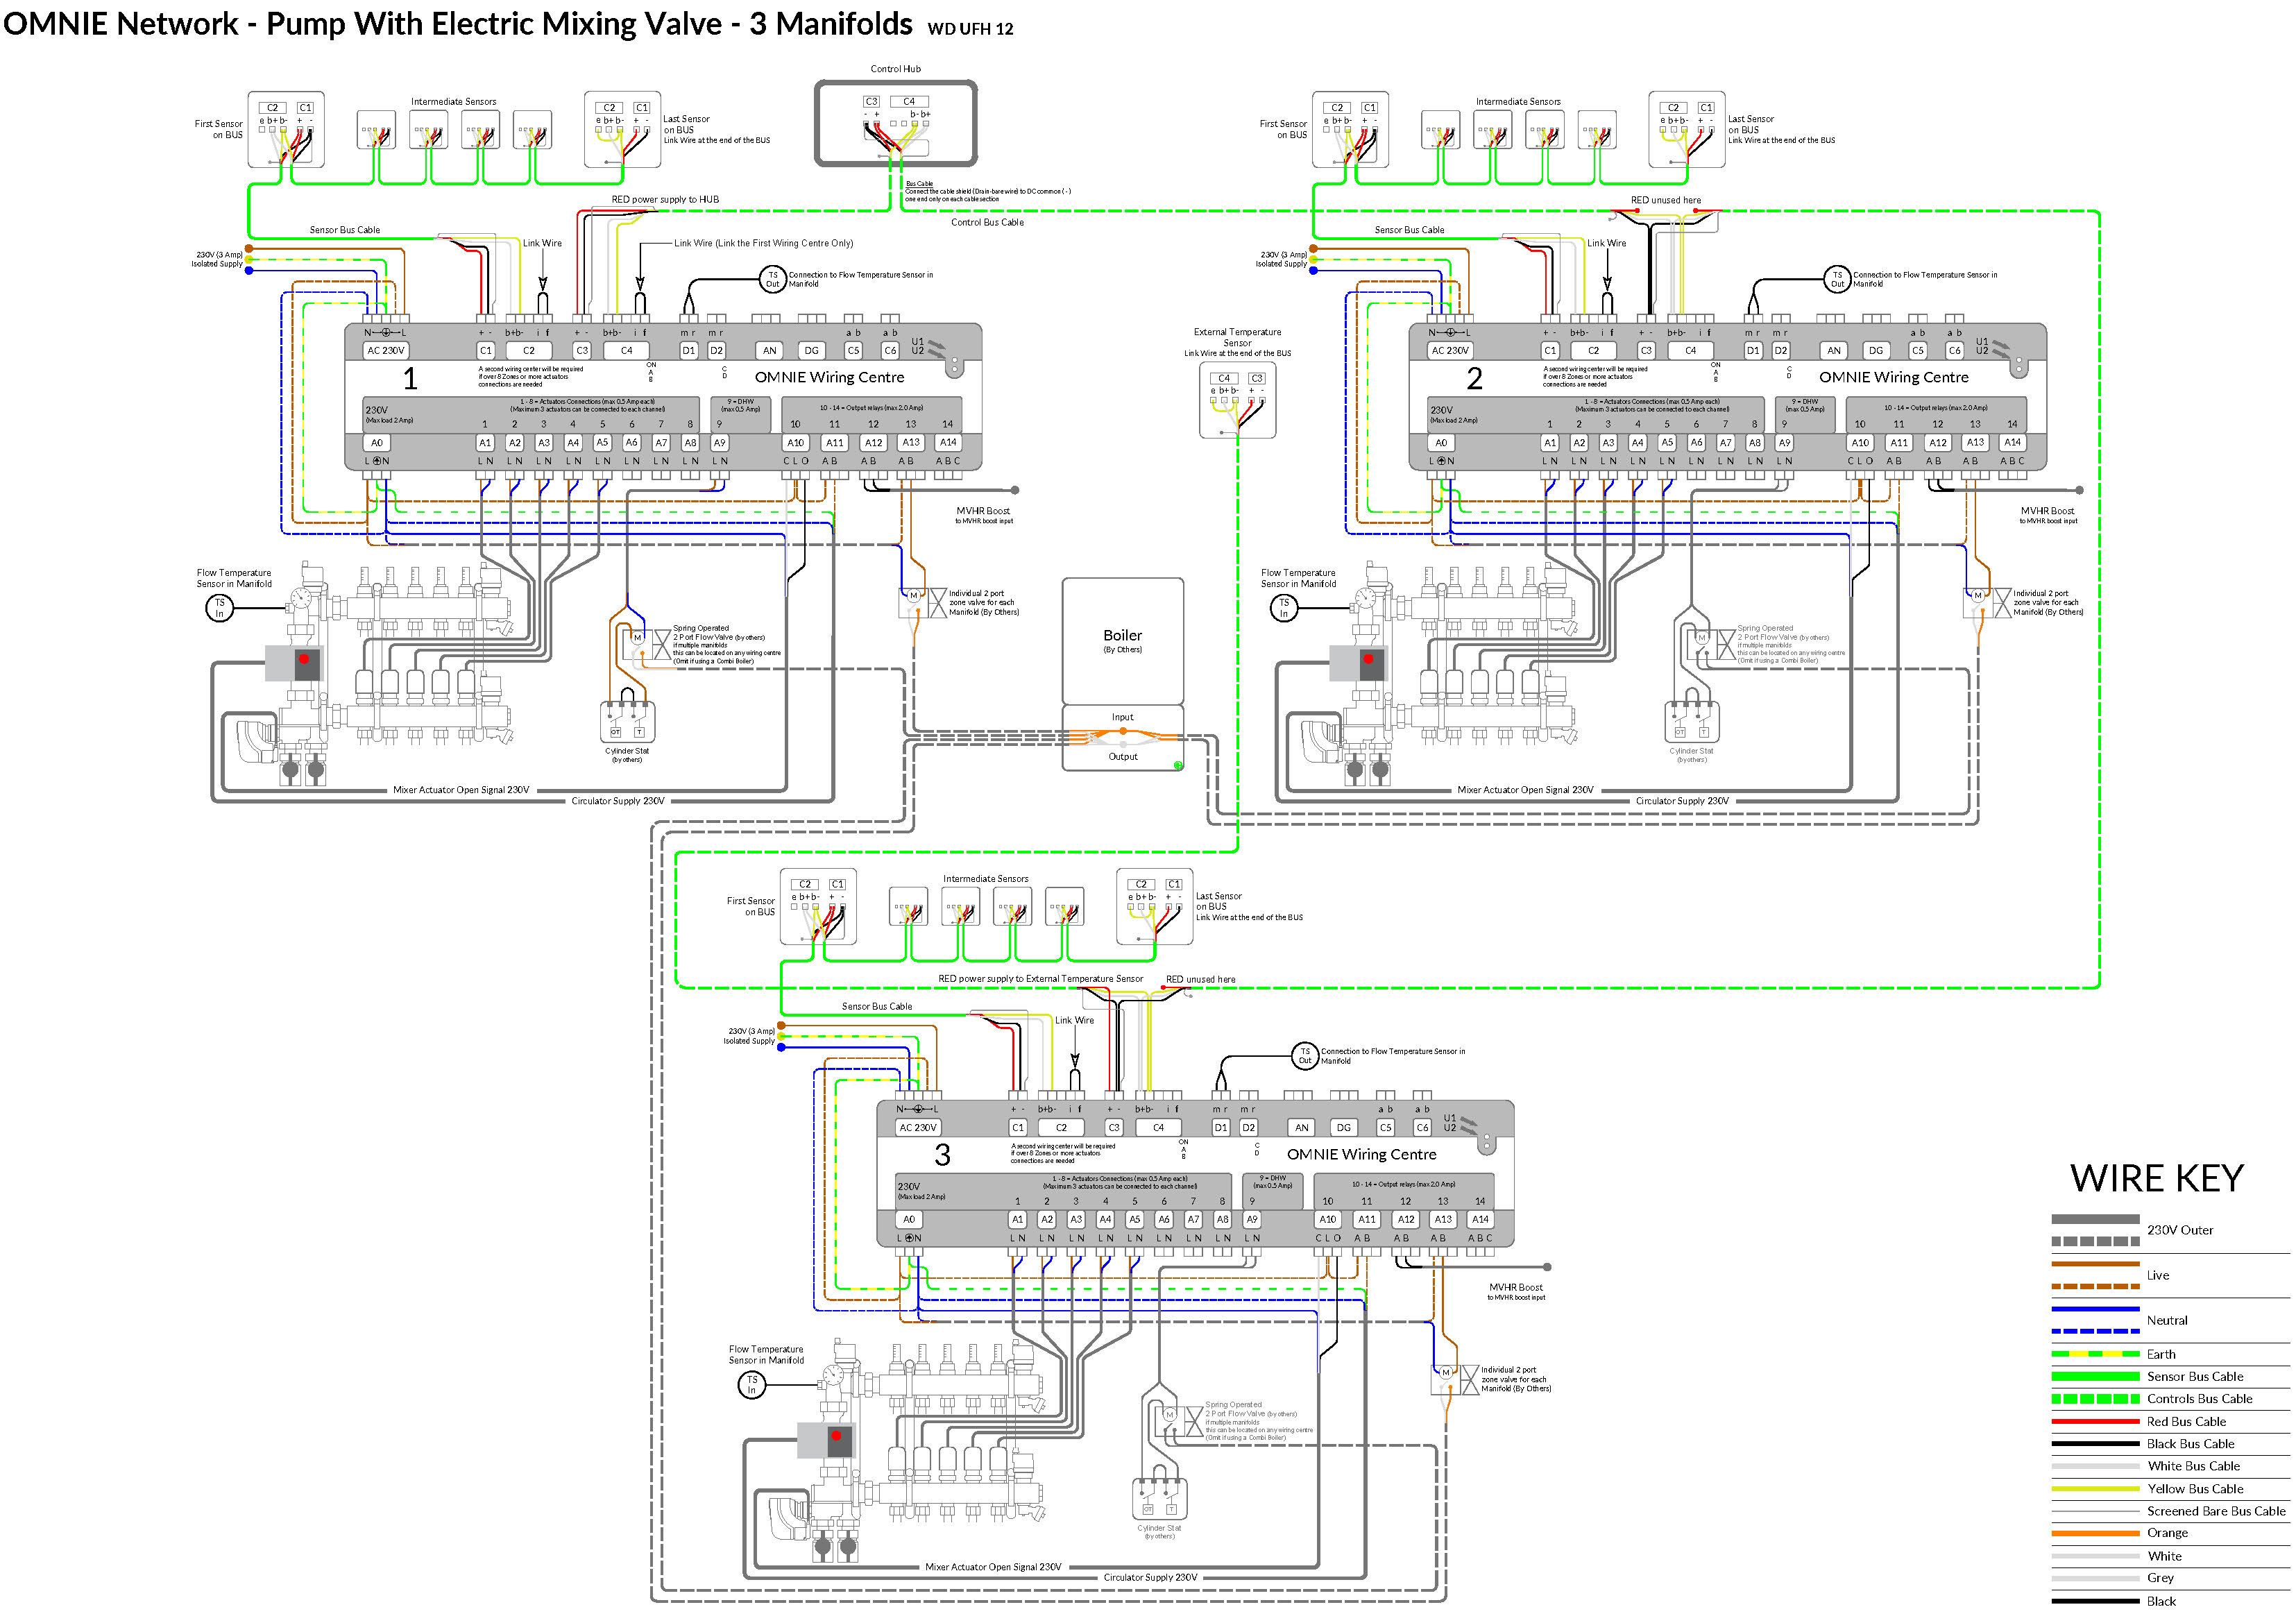 Omnie network controls with electric mixing valve for weather use this wiring diagram for 3 manifolds and wiring centres asfbconference2016 Choice Image